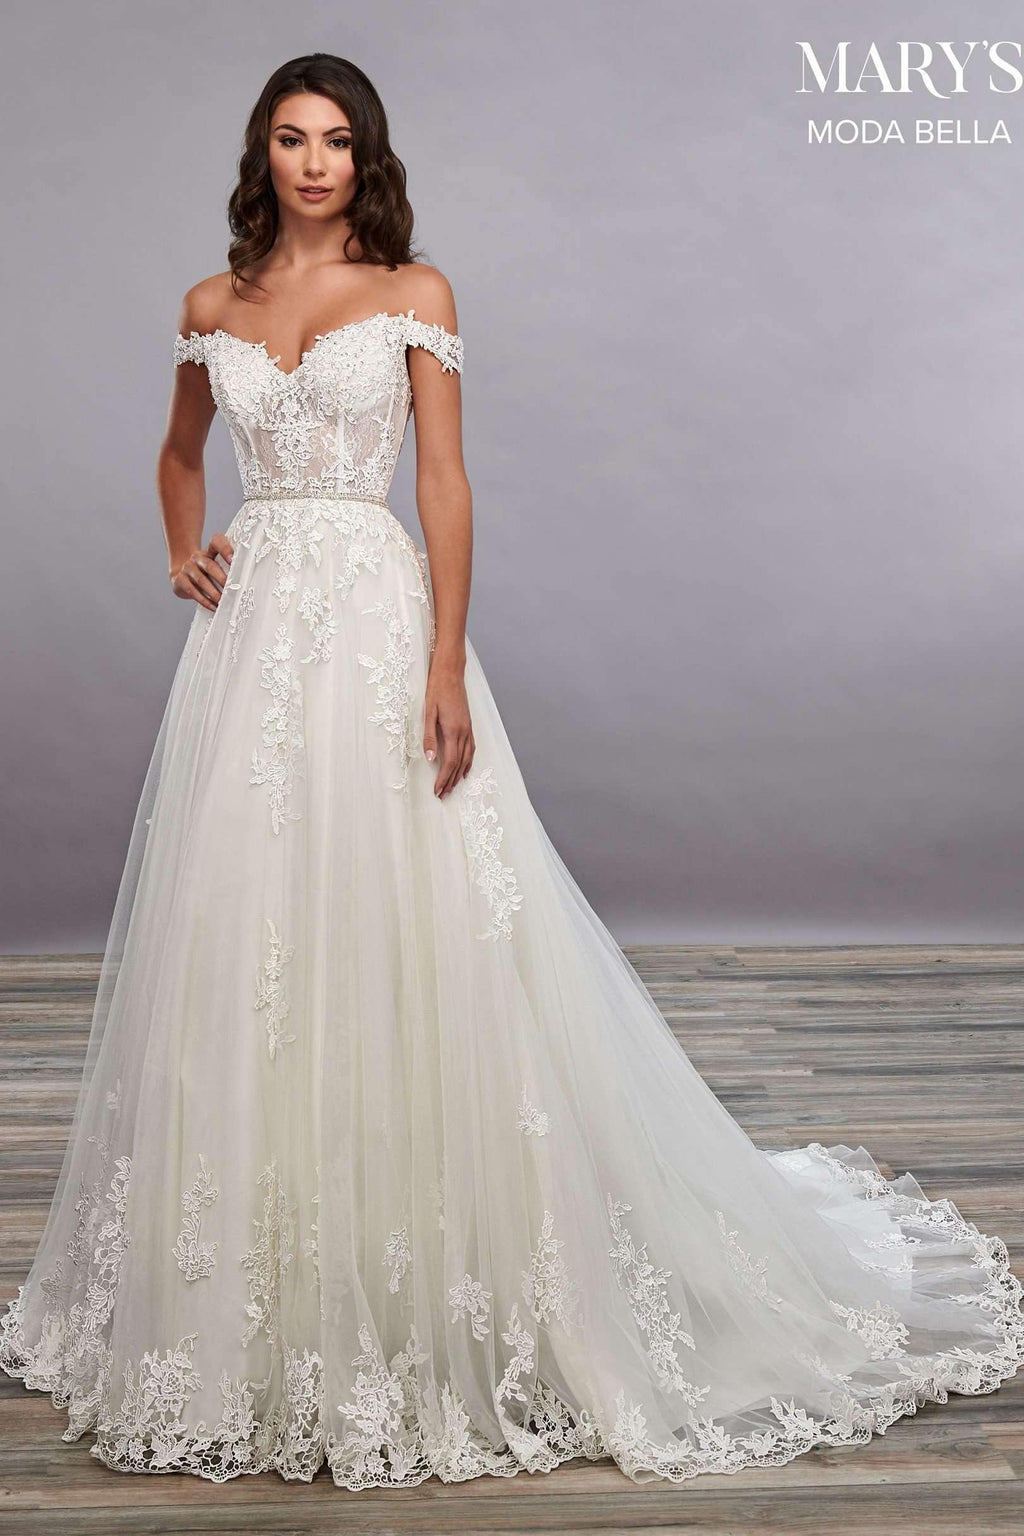 MARY'S BRIDAL - Carmen - Adore Bridal and Occasion Wear